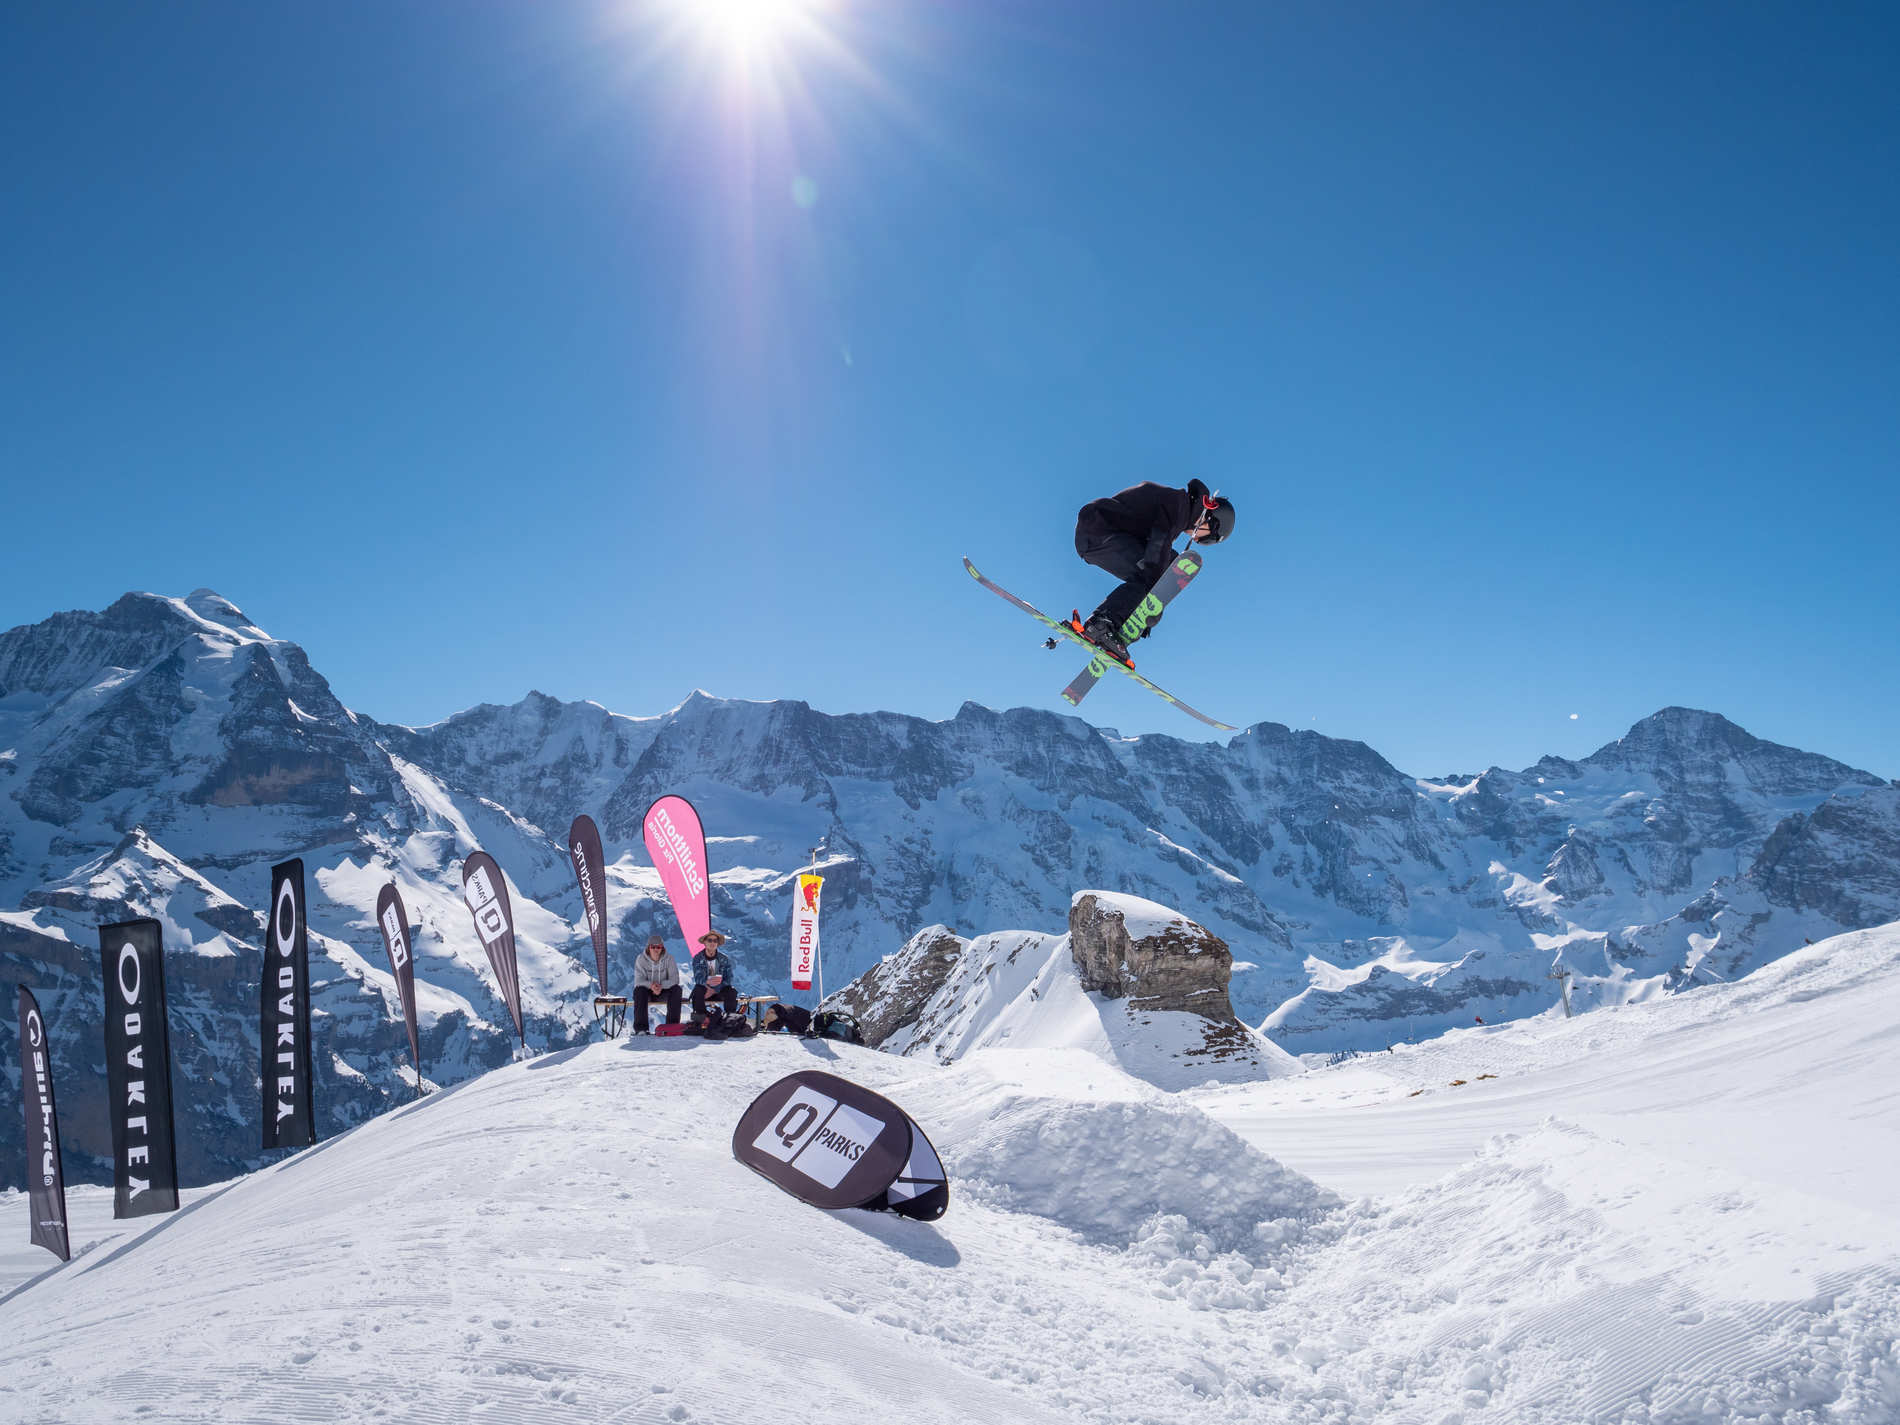 schilthorn 23 03 2019 action fs unknown patrick luchs qparks 003